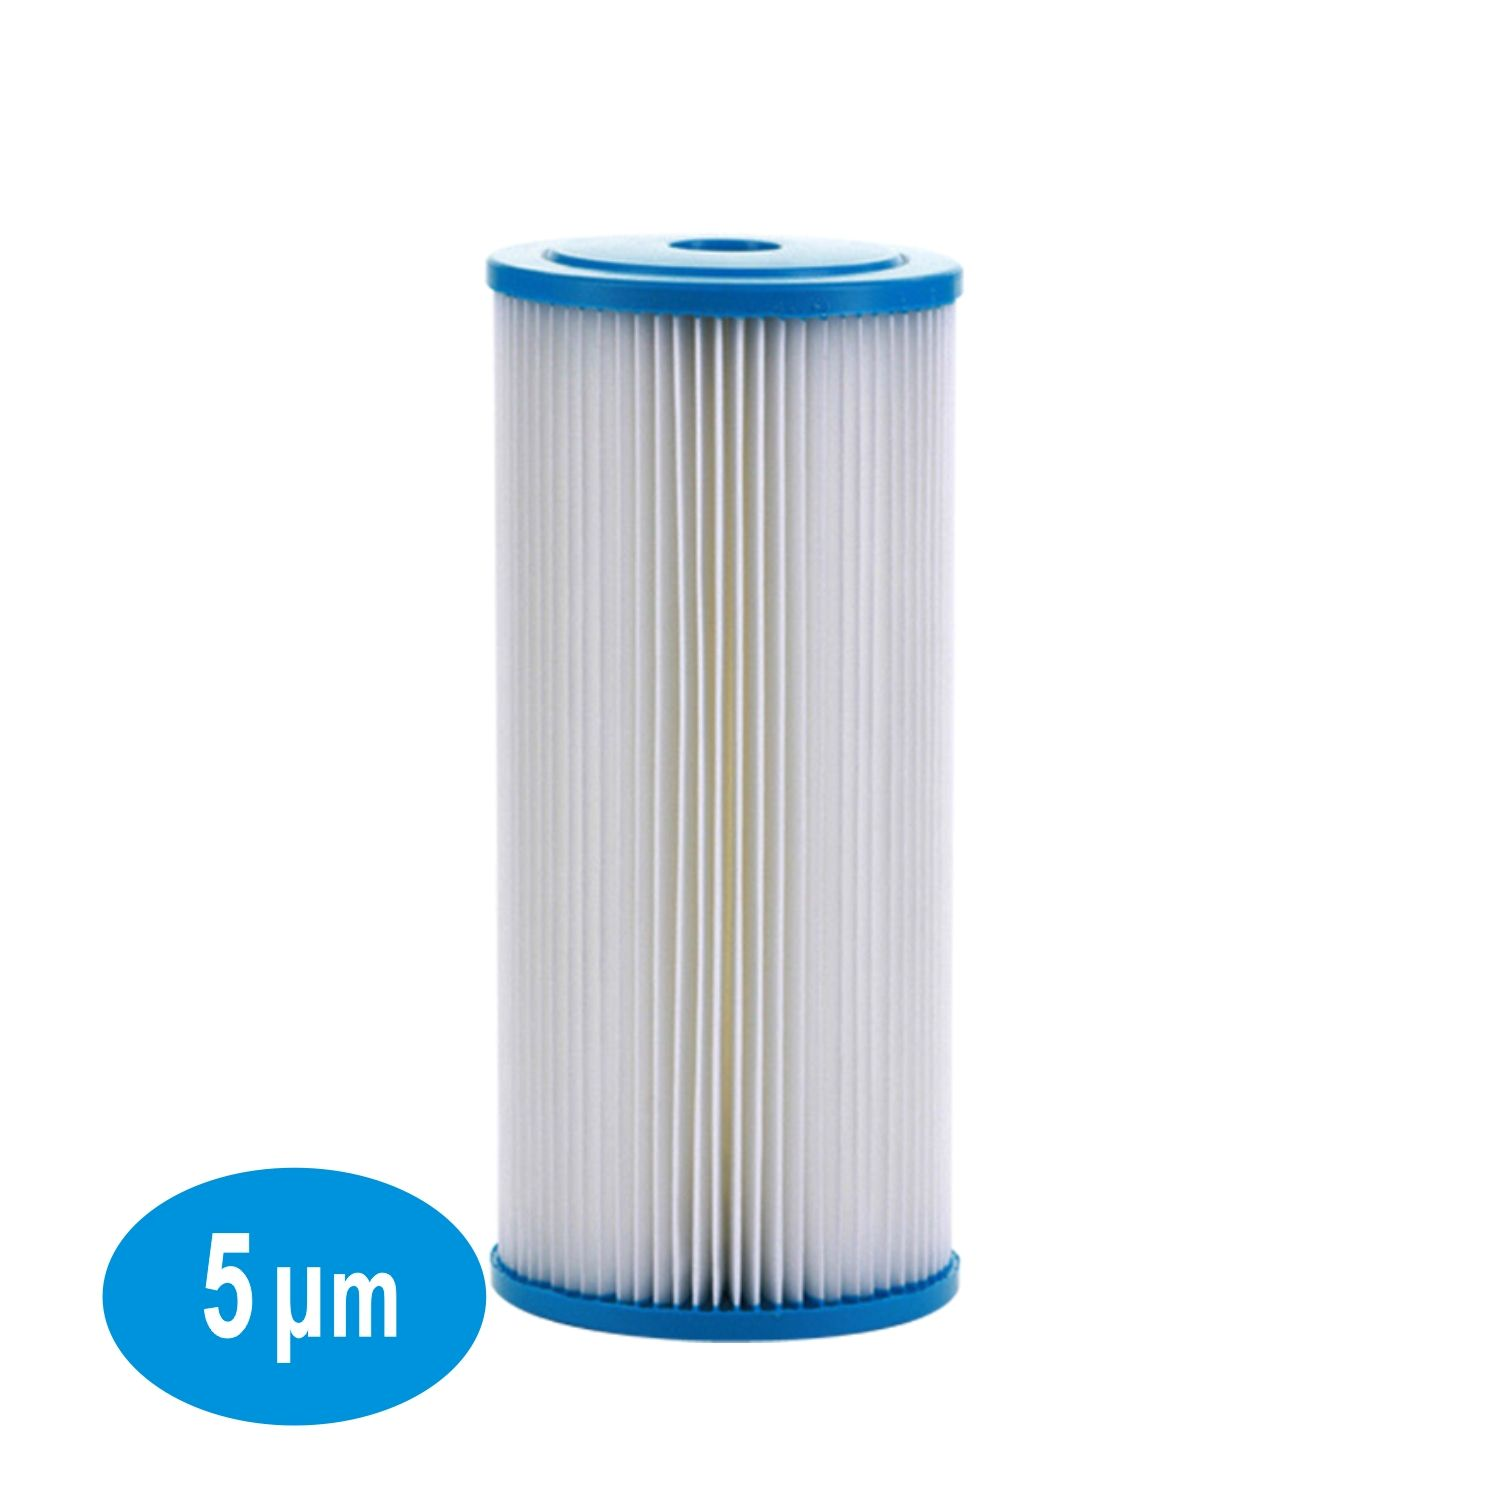 4.5 x 10 Big Blue Replacement 1 Micron Sediment Water Filters